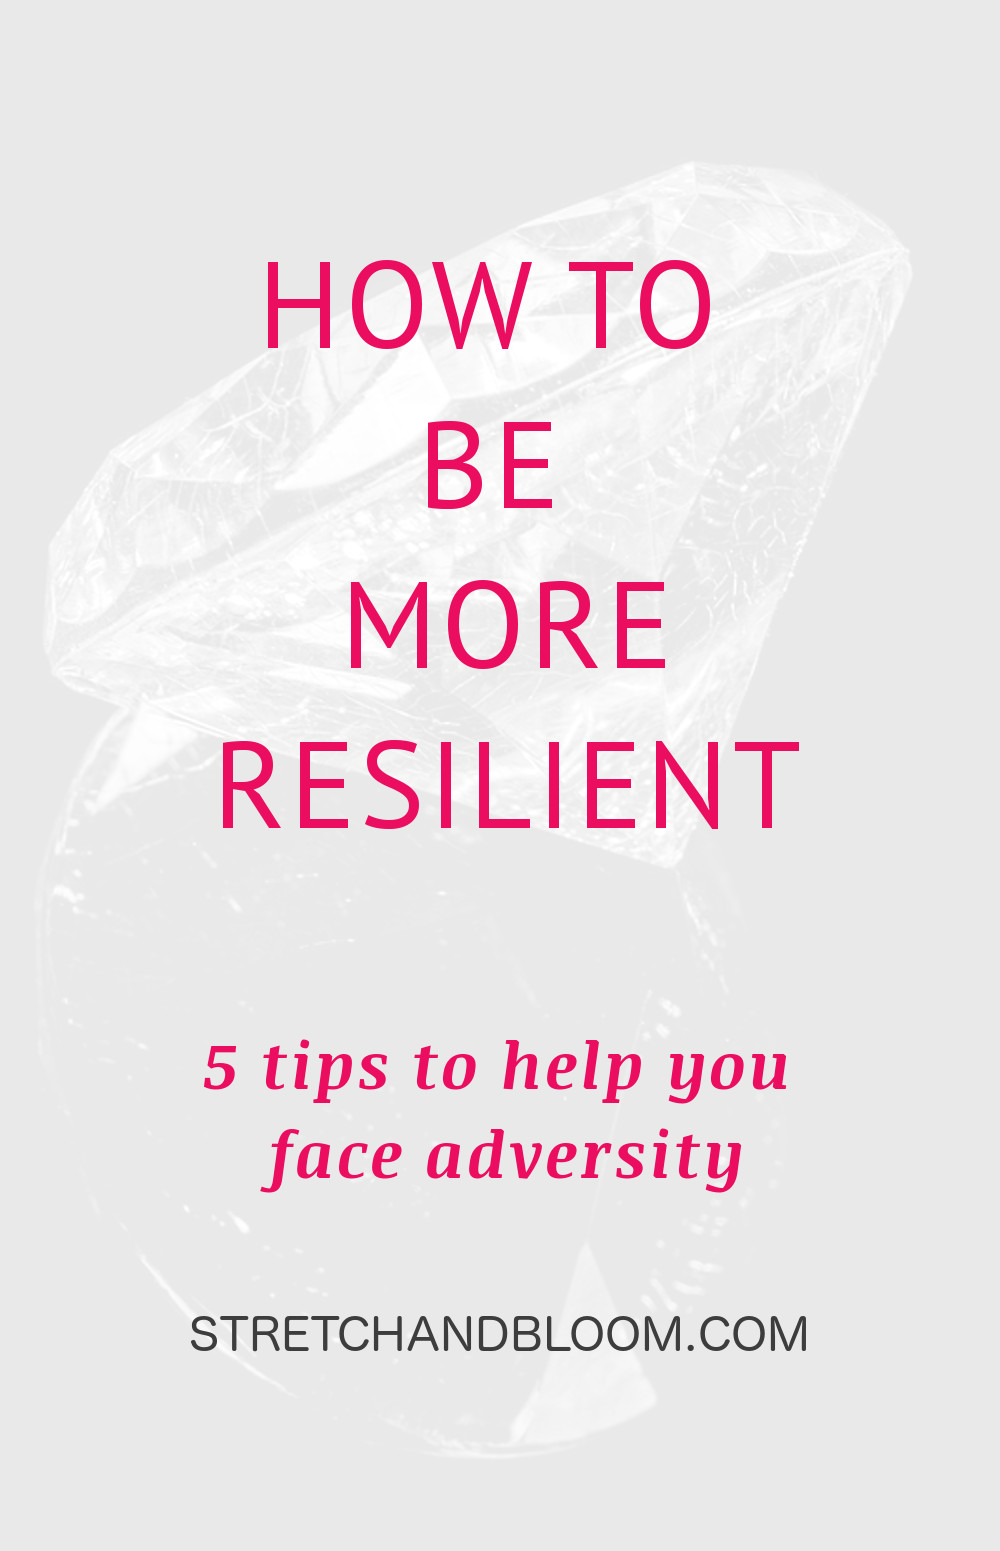 There's a time in life when things don't go your way. That's when you ask yourself how to be more resilient; This article will give you helpful tips. #resilience #mindset #motivation